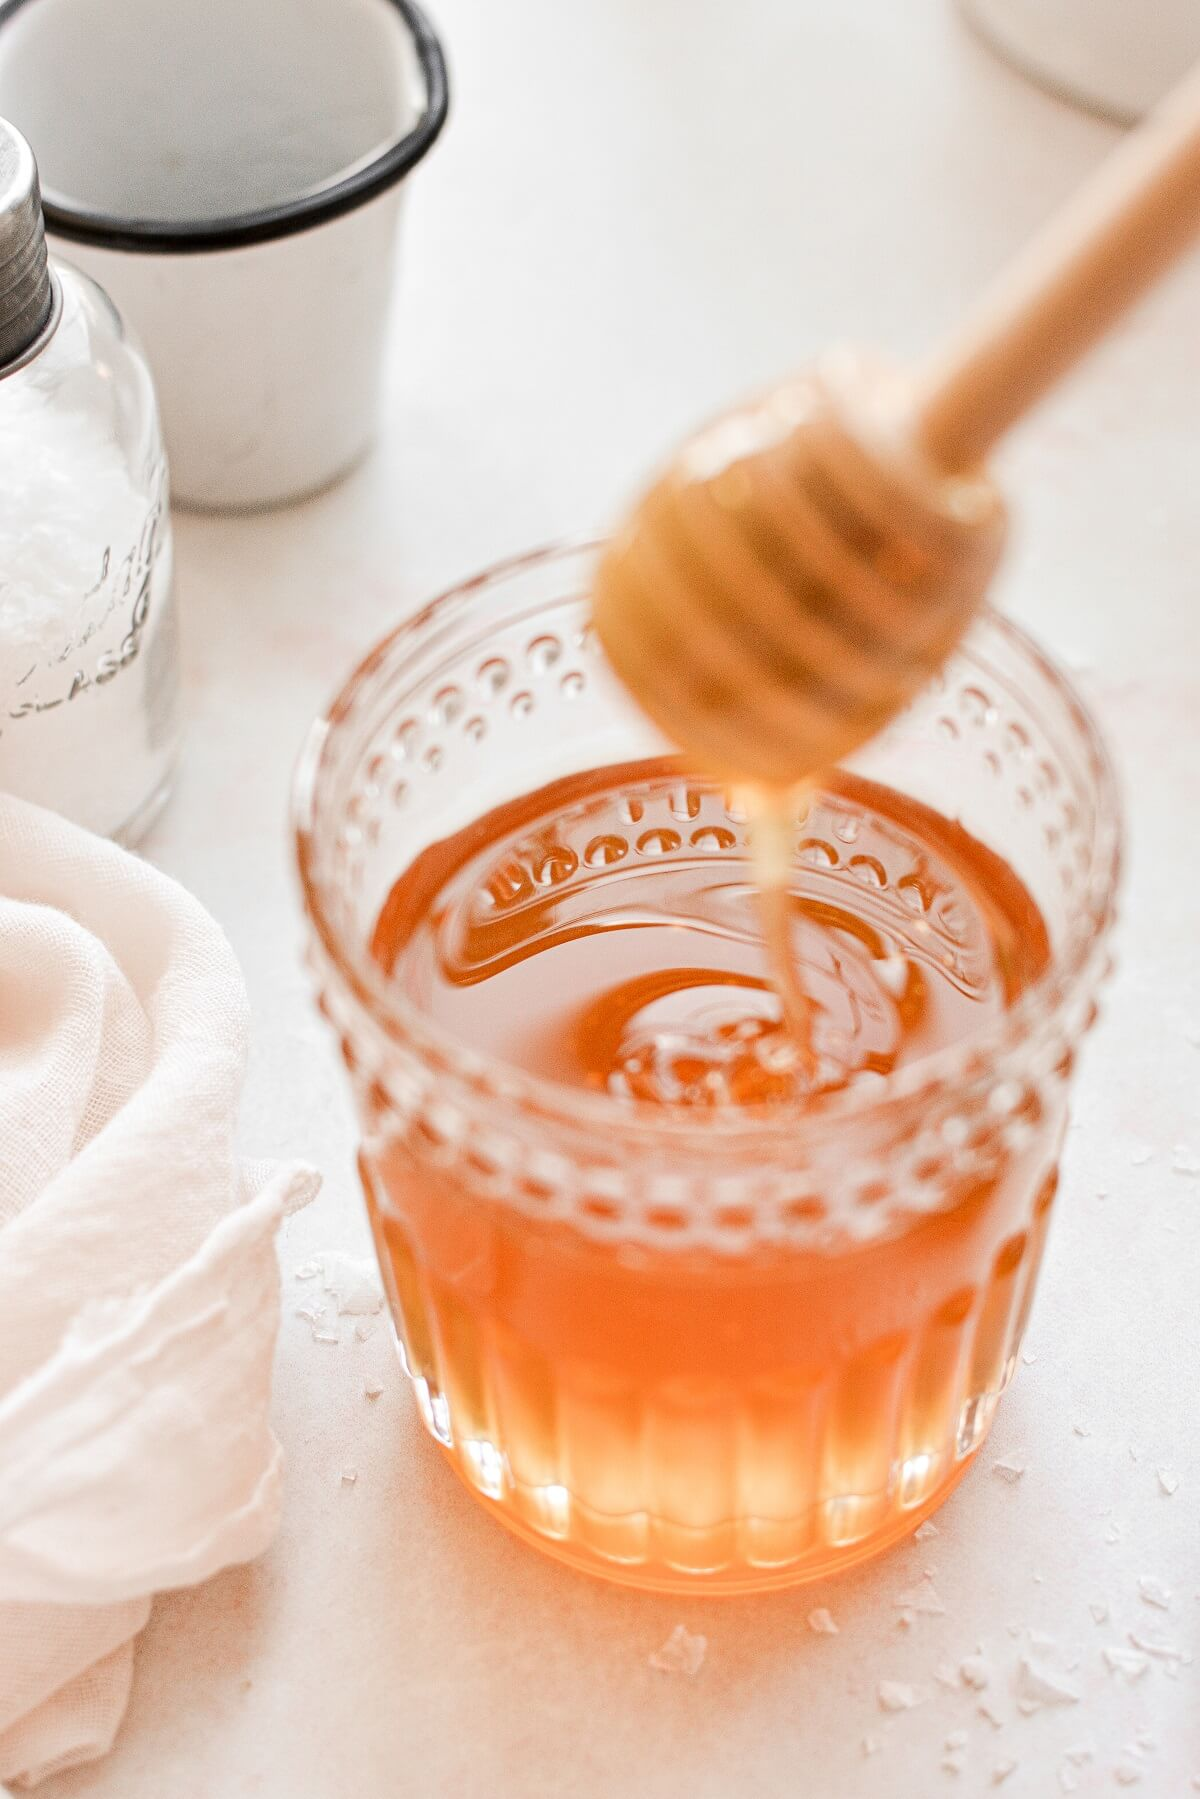 Honey drizzling off a honey dipper into a glass jar filled with honey.